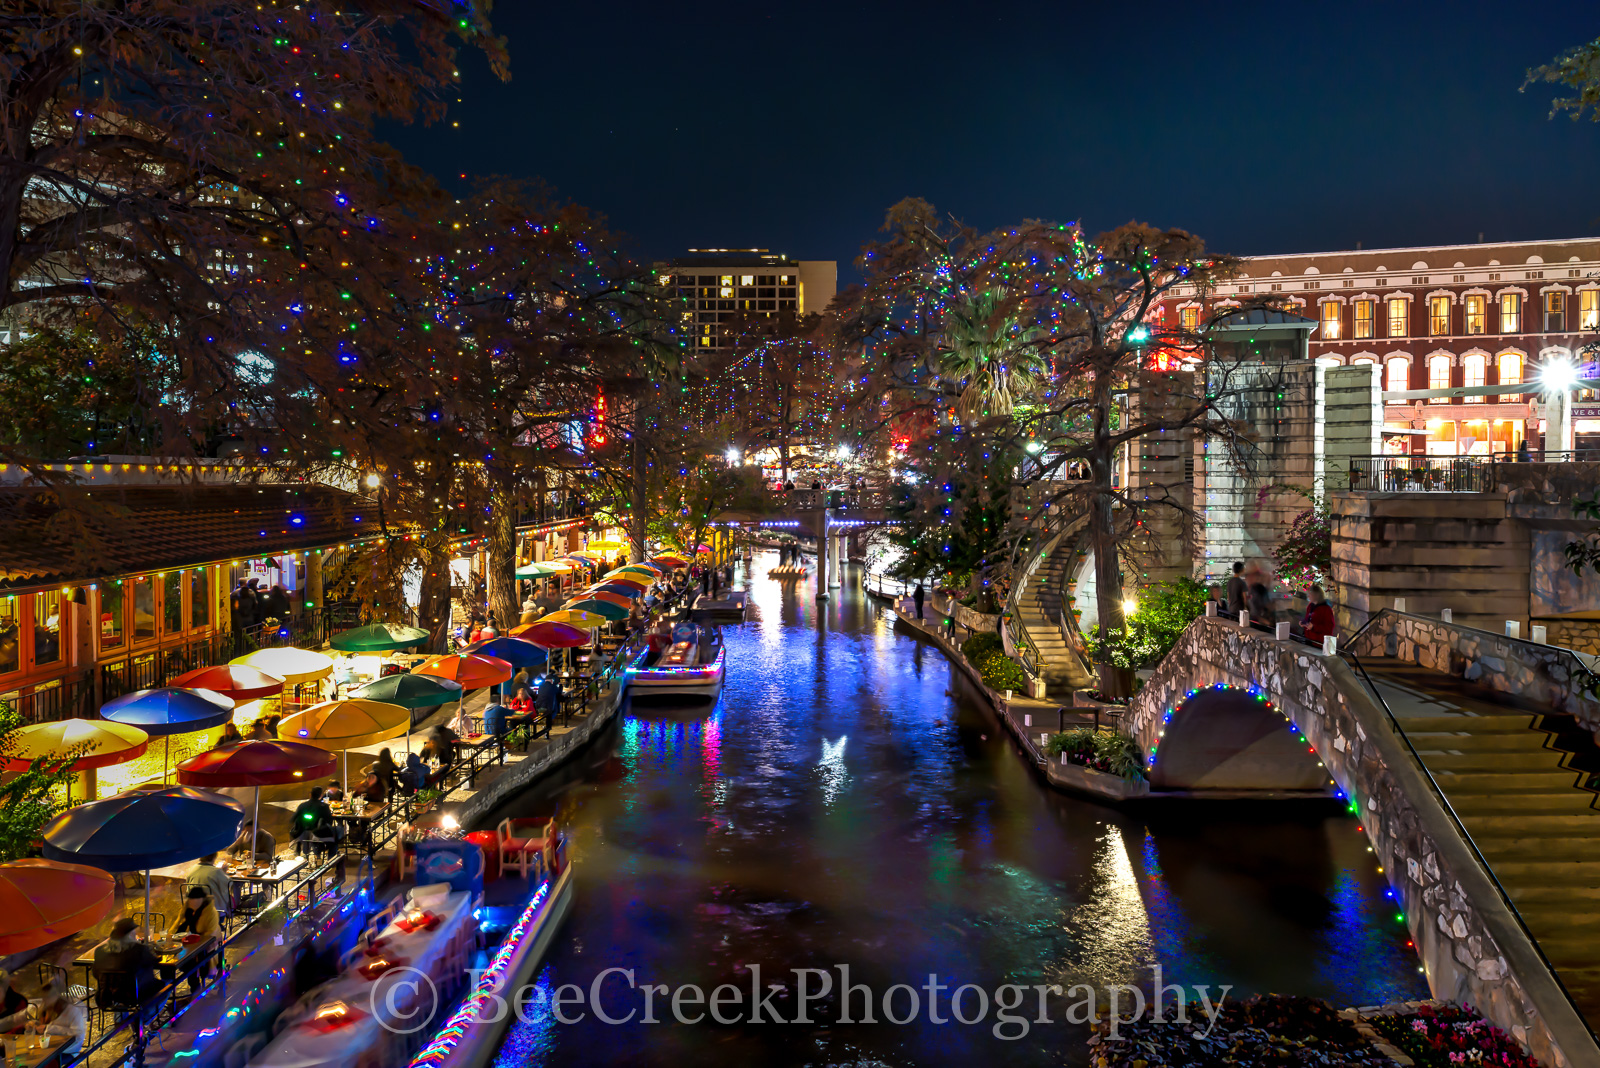 Christmas, River Walk, Riverwalk, San Antonio, boats, cityscape, cityscapes, decorations, festive, festivities, holiday, lights, season